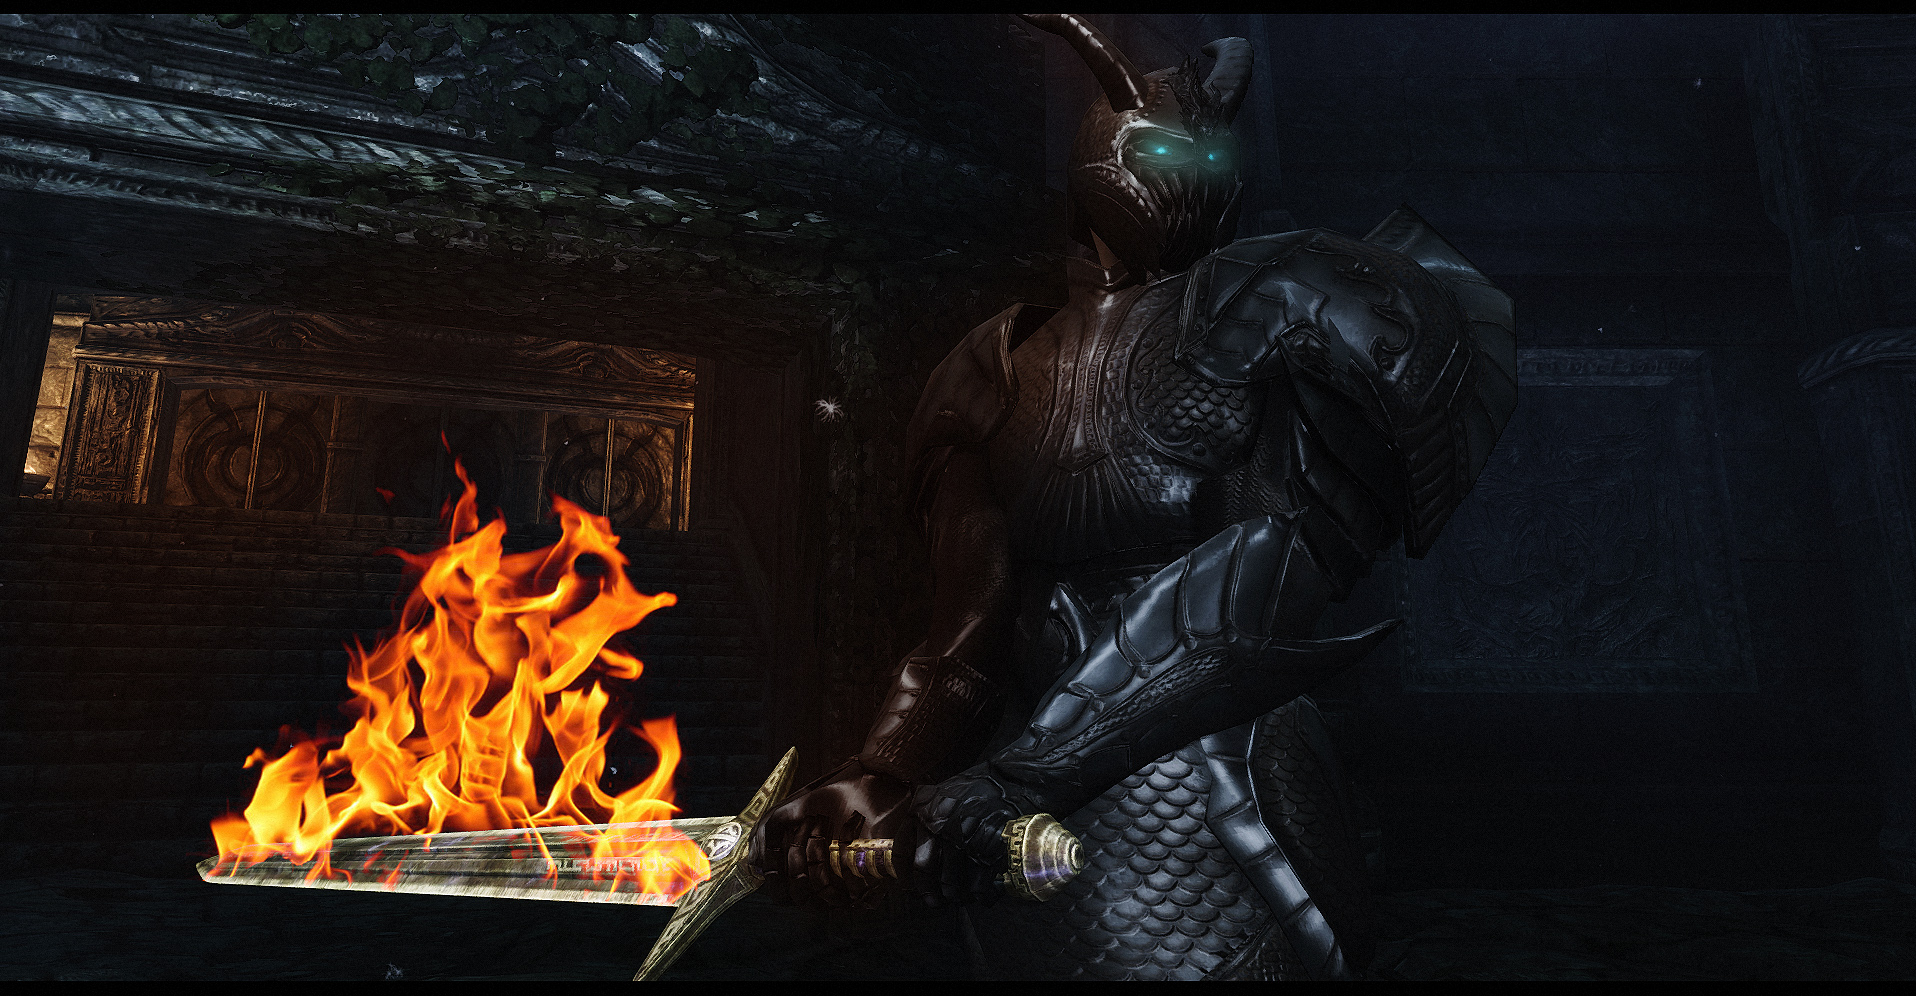 Ancient Dragon Knight Armor By Newermind43 On Deviantart Dragon armor dragon knight knight art. ancient dragon knight armor by